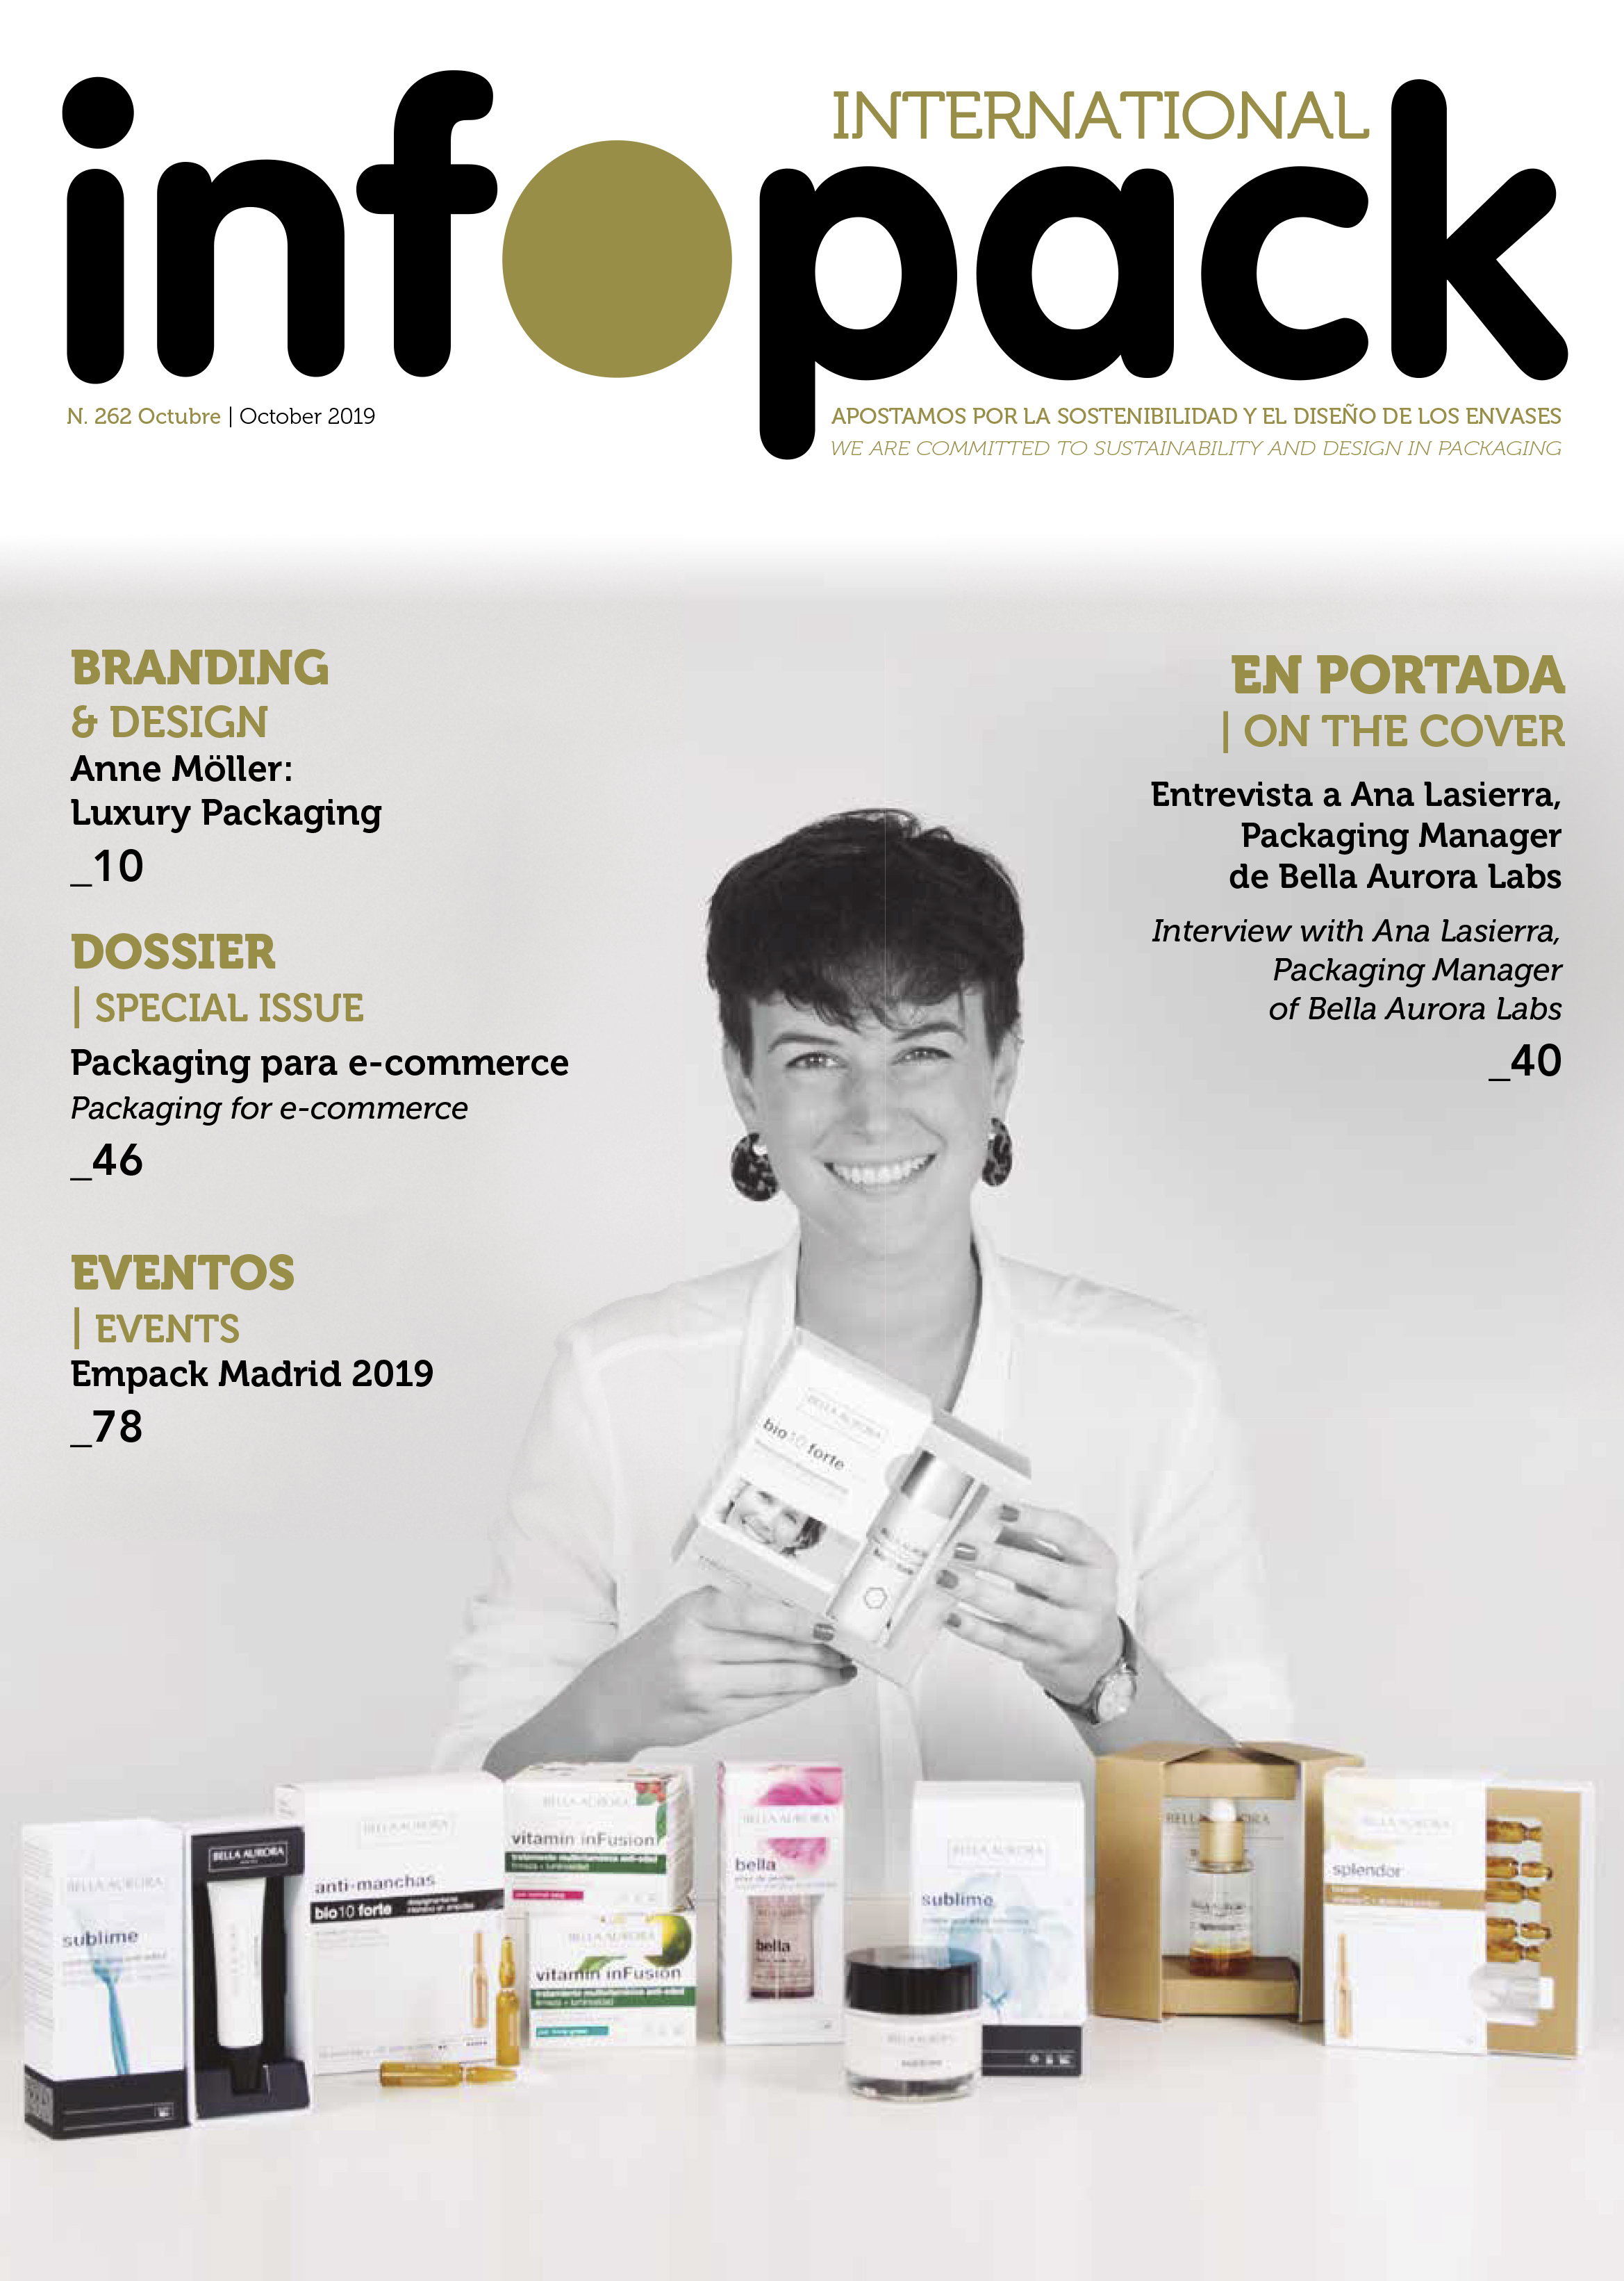 Ana Lasierra, on the cover of Infopack magazine